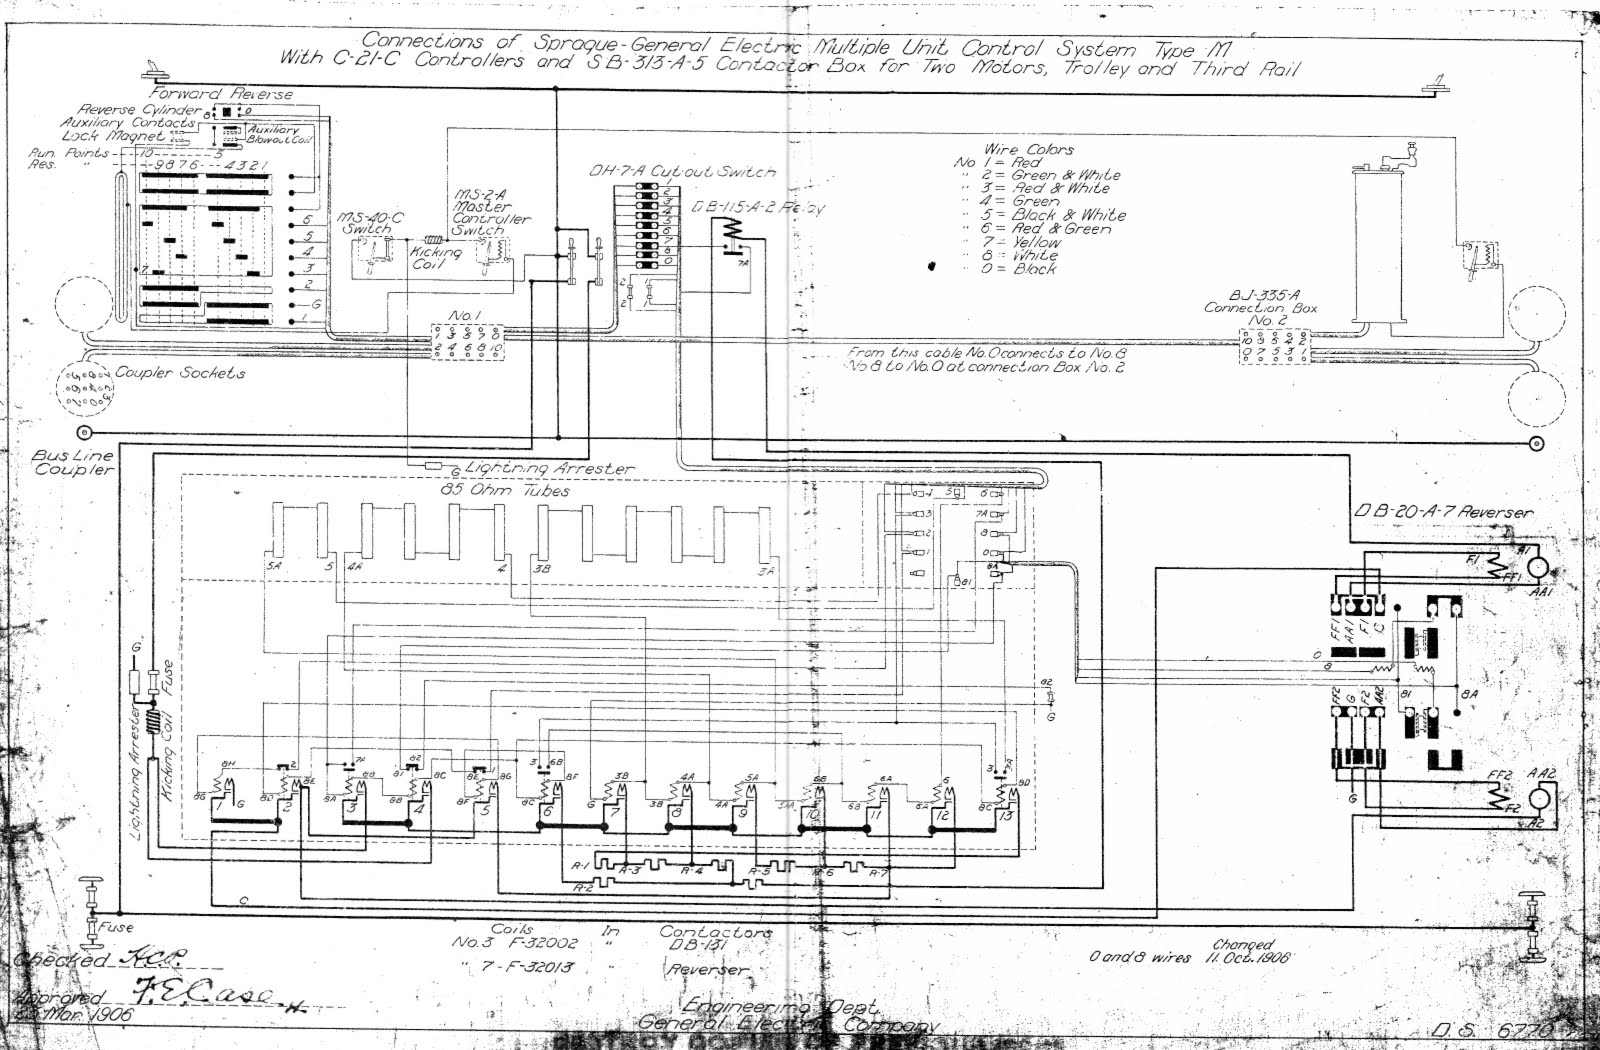 Mack air ke wiring diagram - Diagrams online Mack Jake Ke Wiring Schematic on